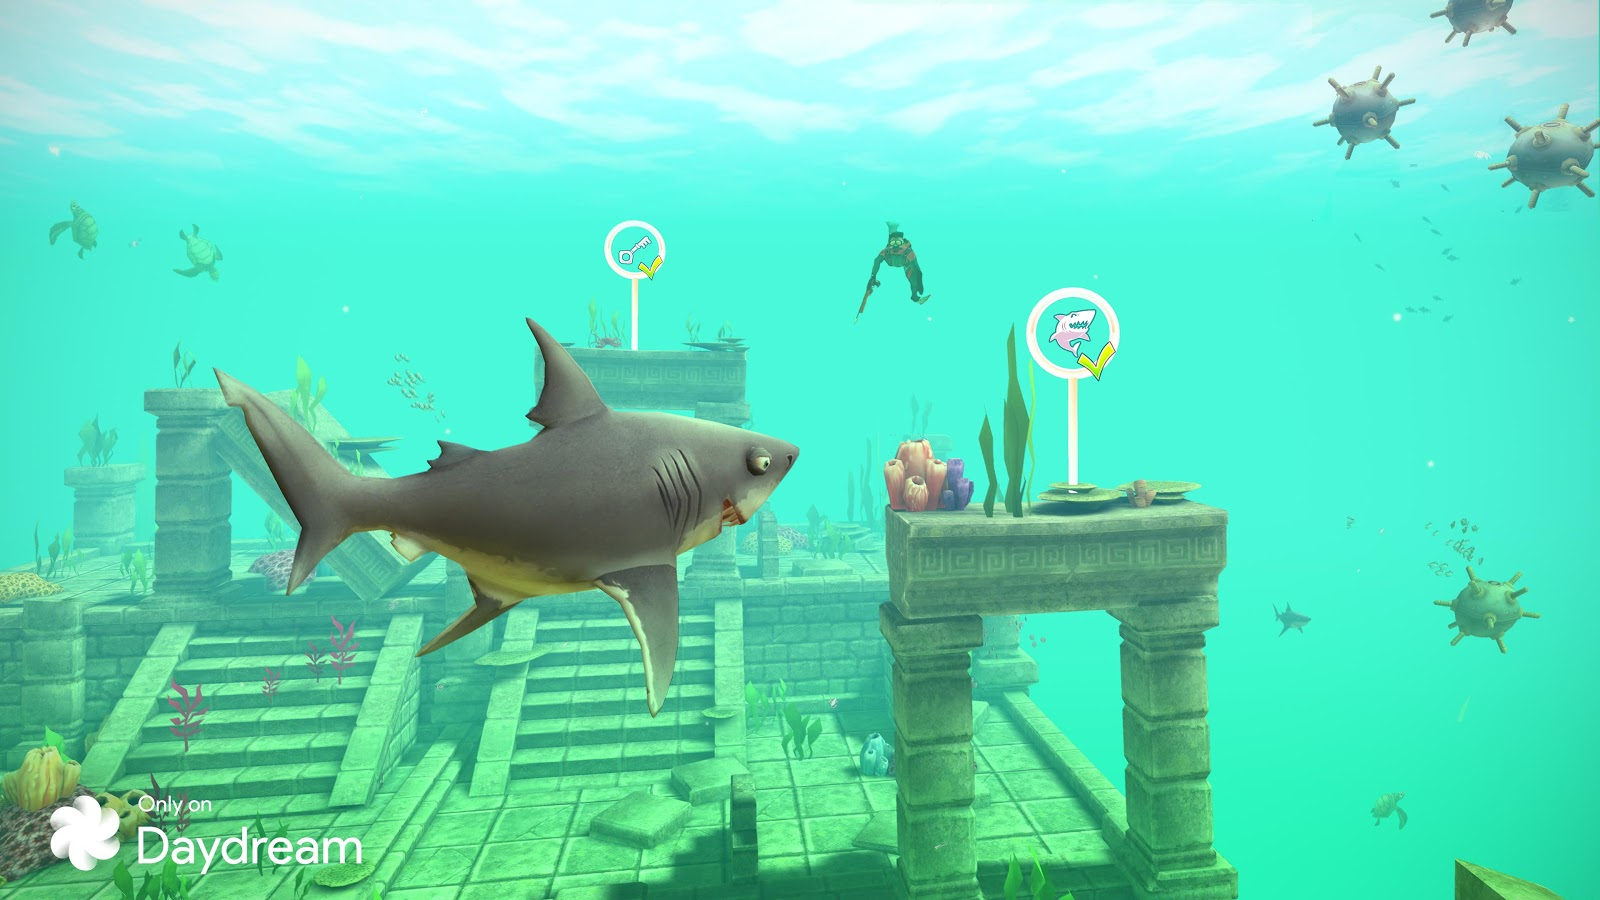 Ubisoft Releases Hungry Shark VR For Google Daydream - VR